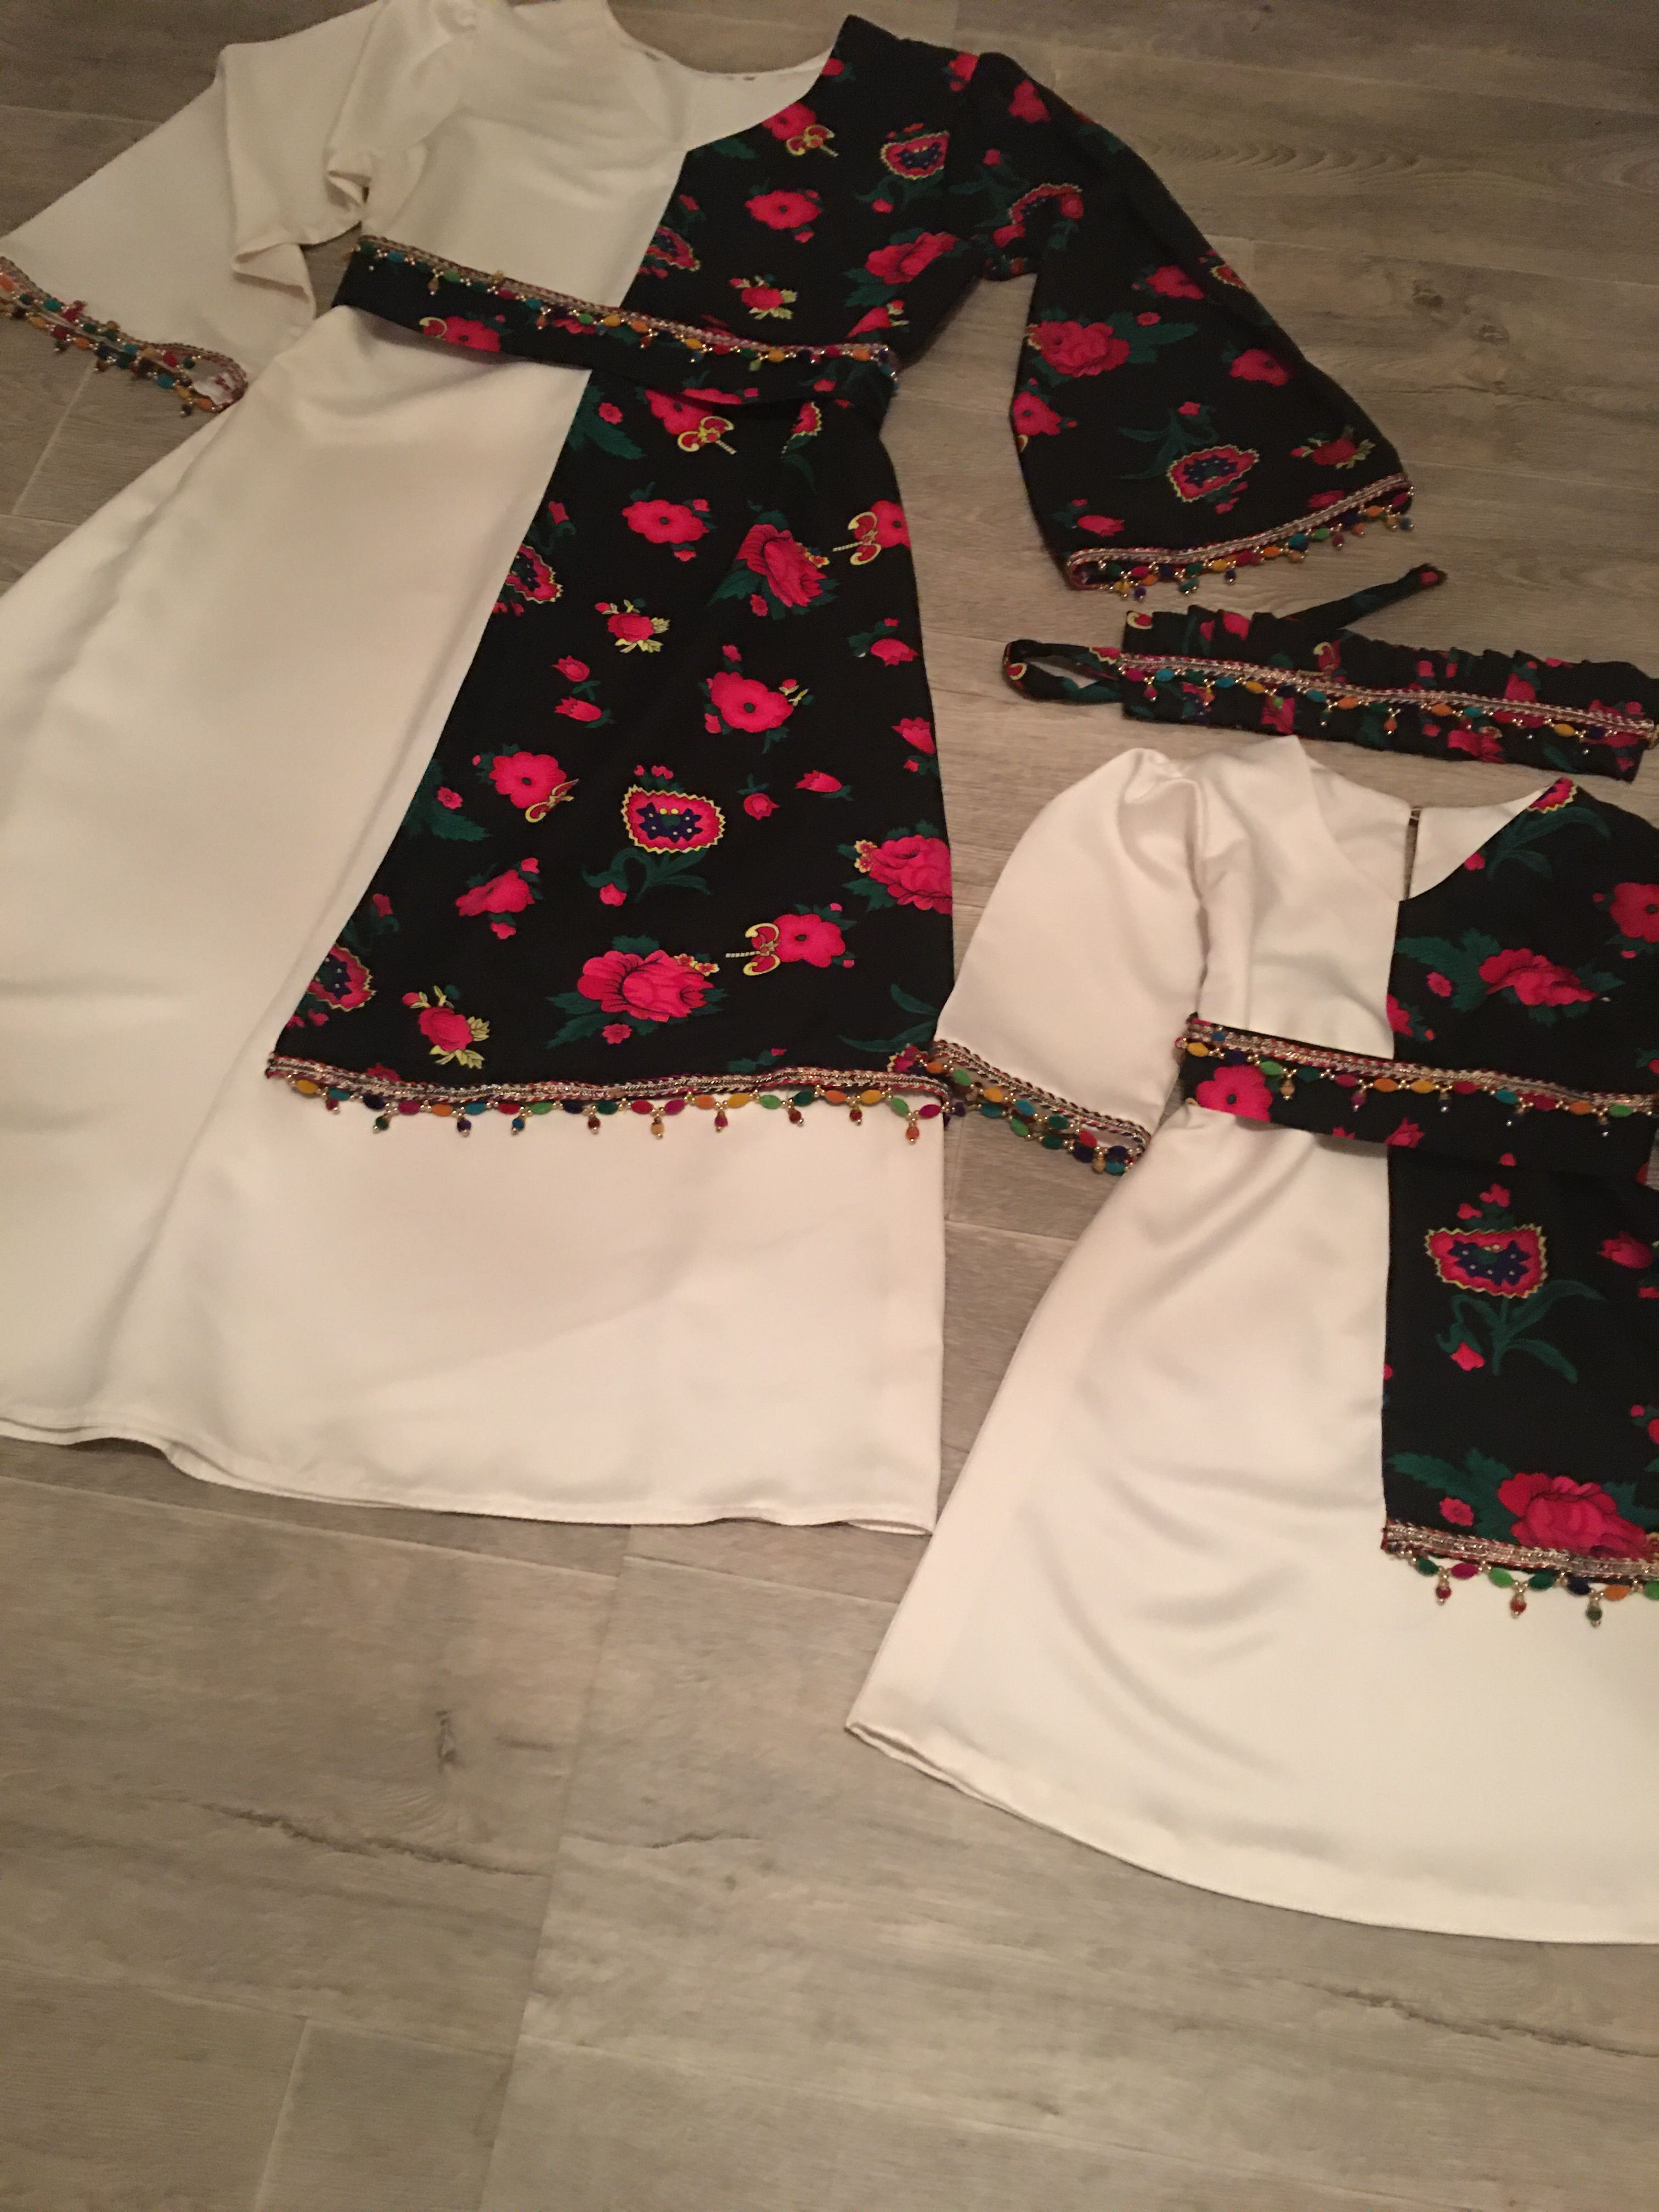 Pin By فايزة مال On Flower In 2021 Fashion Moroccan Clothing Fashion Outfits